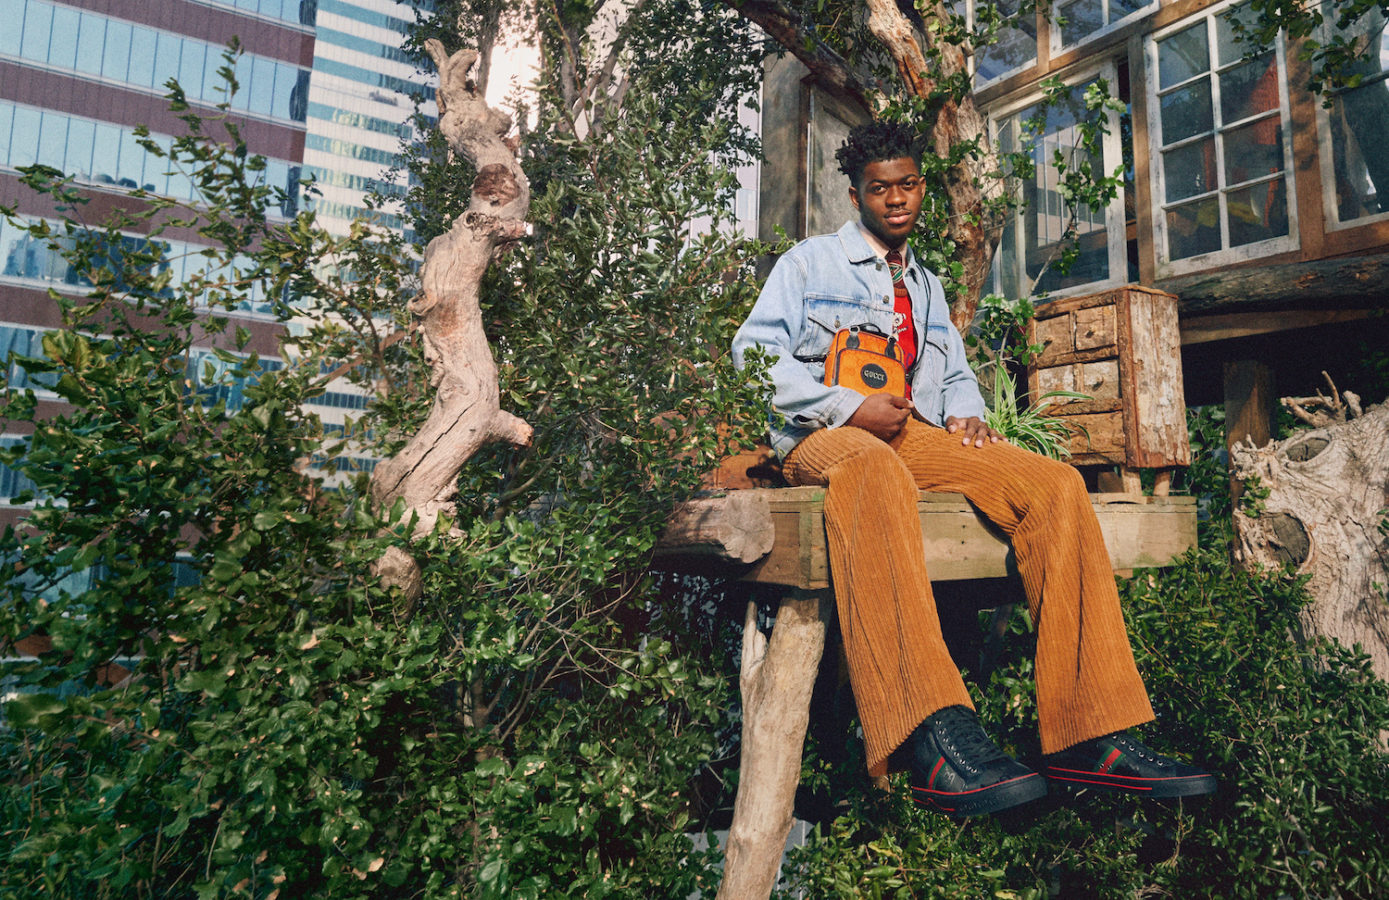 Lil Was X in Off The Grid Gucci ad campaign, photographed by Harmony Korine.